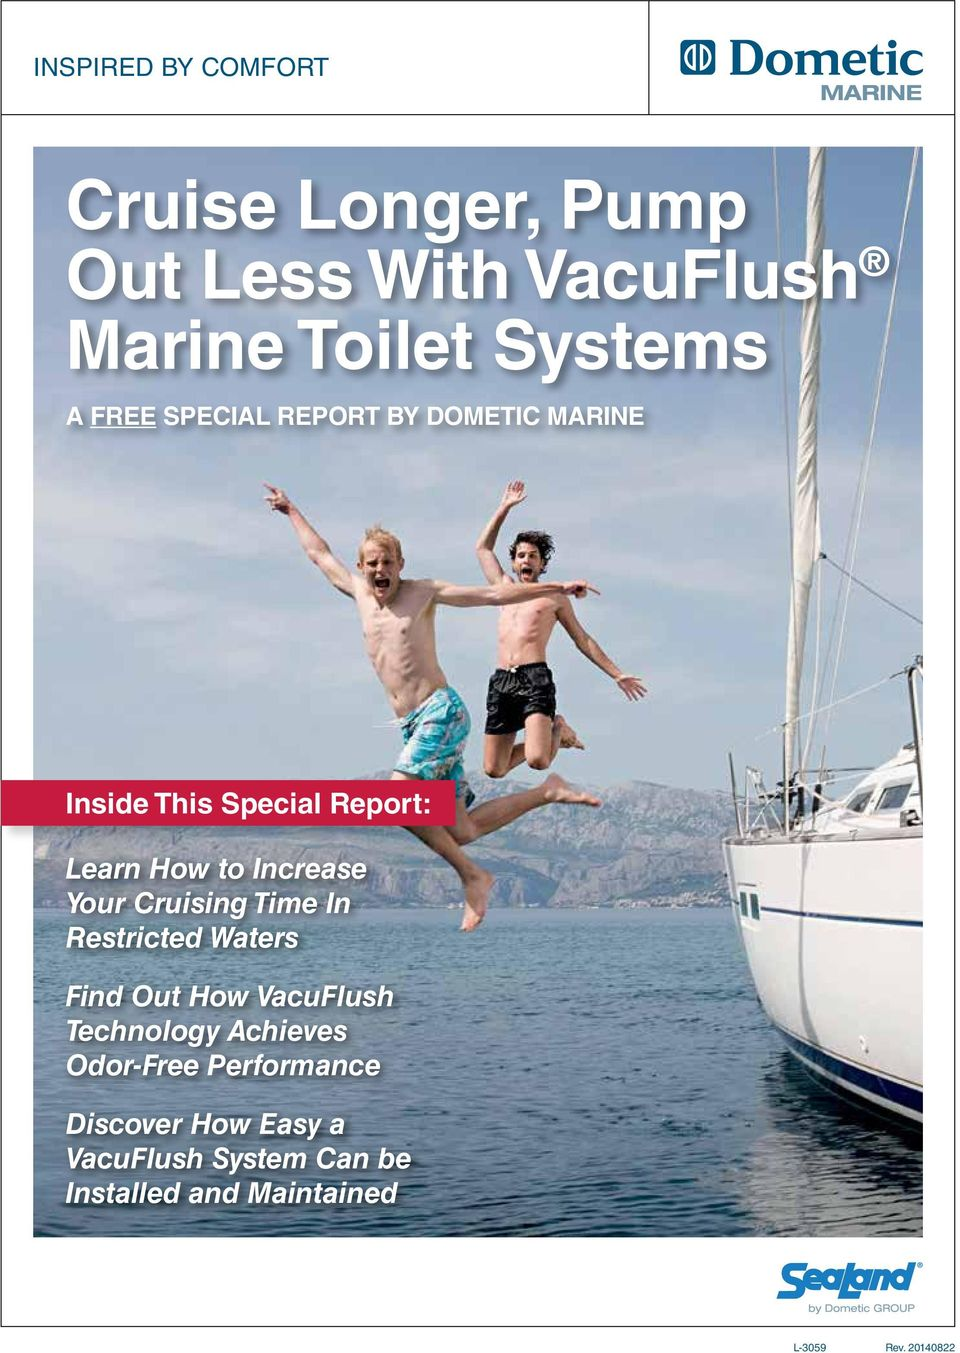 Cruise Longer Pump Out Less With Vacuflush Marine Toilet Systems Pdf Premium Touch Control Panel Thetford Cruising Time In Restricted Waters Find How Technology Achieves Odor Free